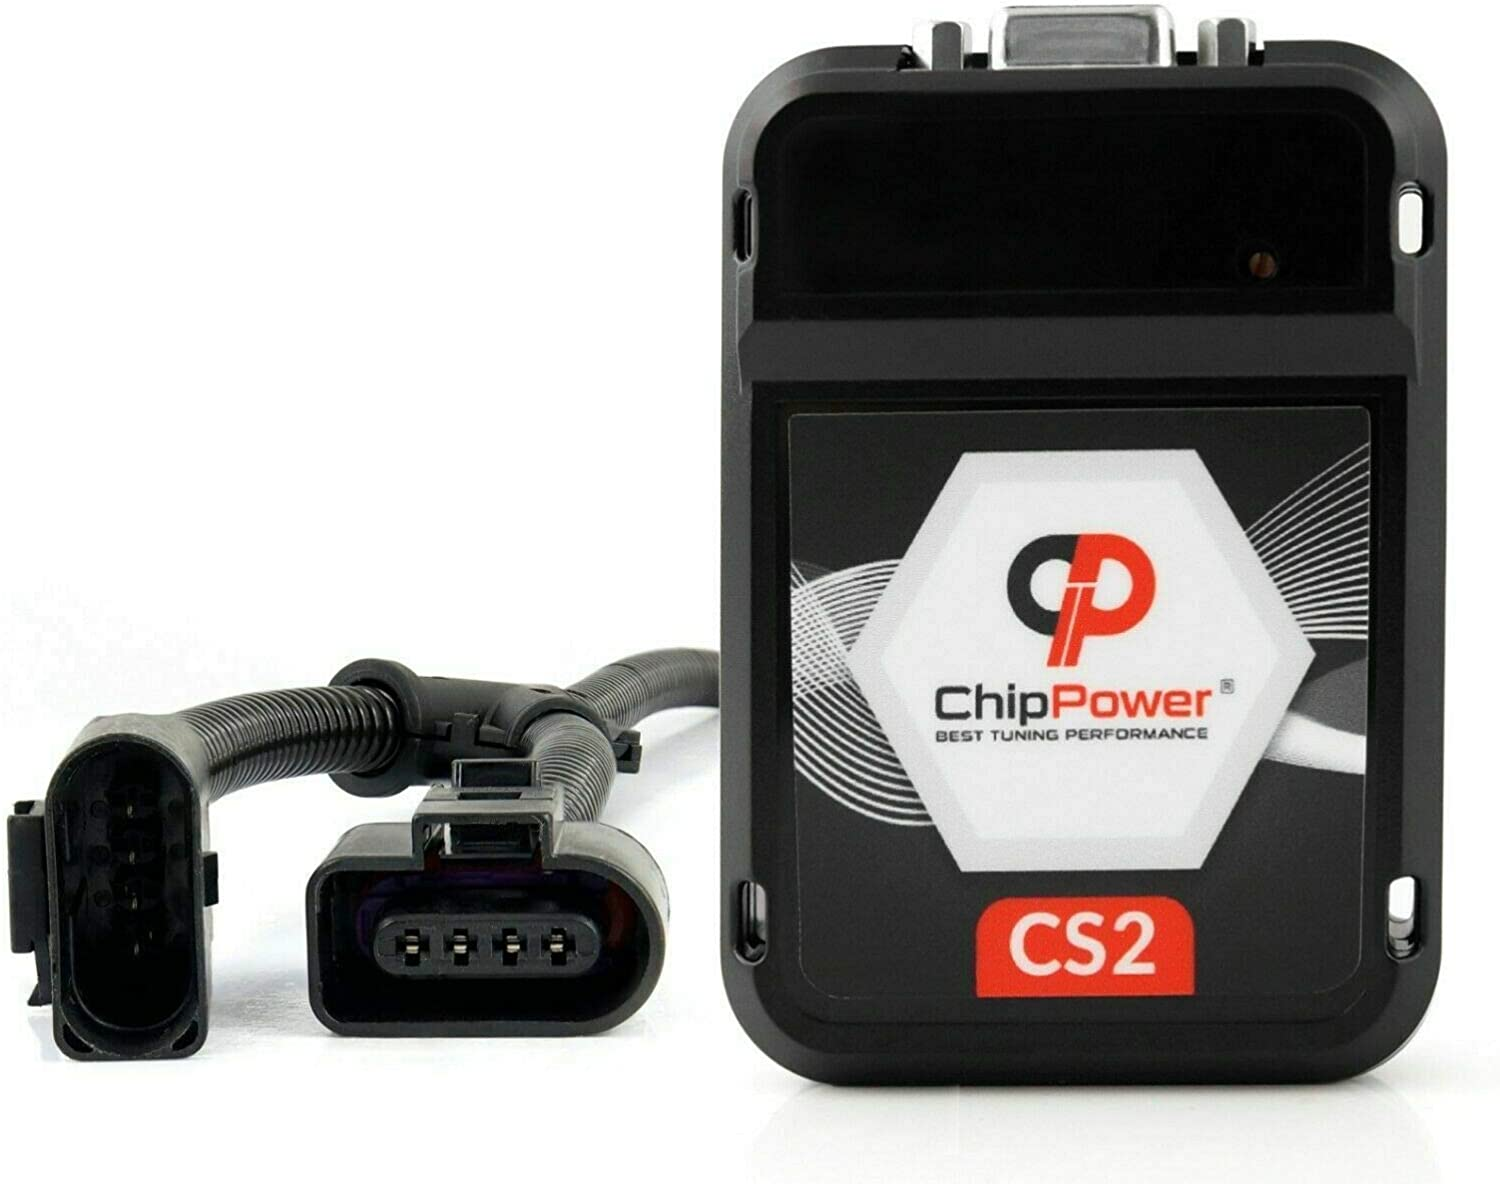 6L ChipPower Chip Tuning Box CS2 for Ibiza Mk3 III 1.4 74 kW 101 HP 2002-2009 Power Economy Petrol